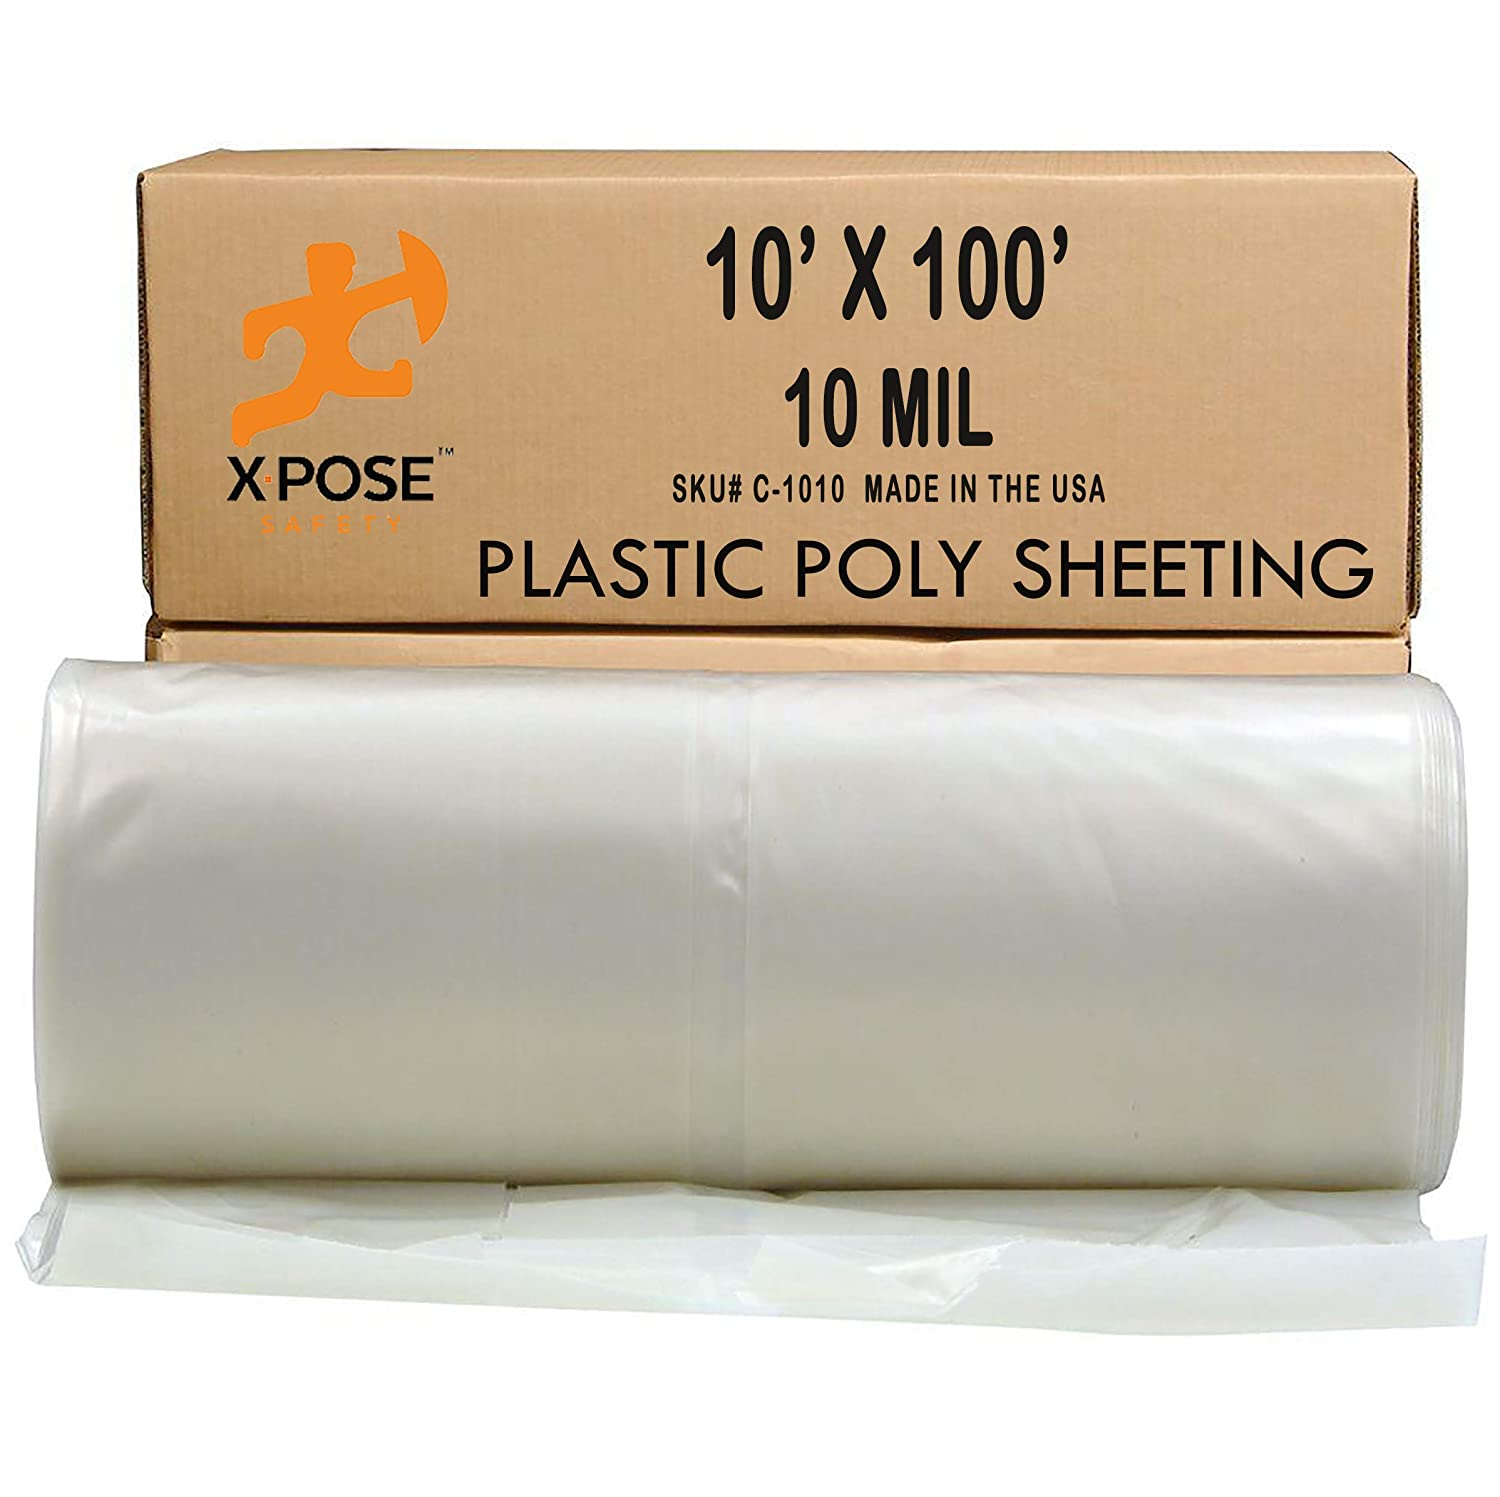 Poly Sheeting - 10x100 Feet Heavy Duty, 10 Mil Thick Frosted Plastic Tarp Waterproof Vapor and Dust Protective Equipment Cover - Agricultural, Construction and Industrial Use - by Xpose Safety